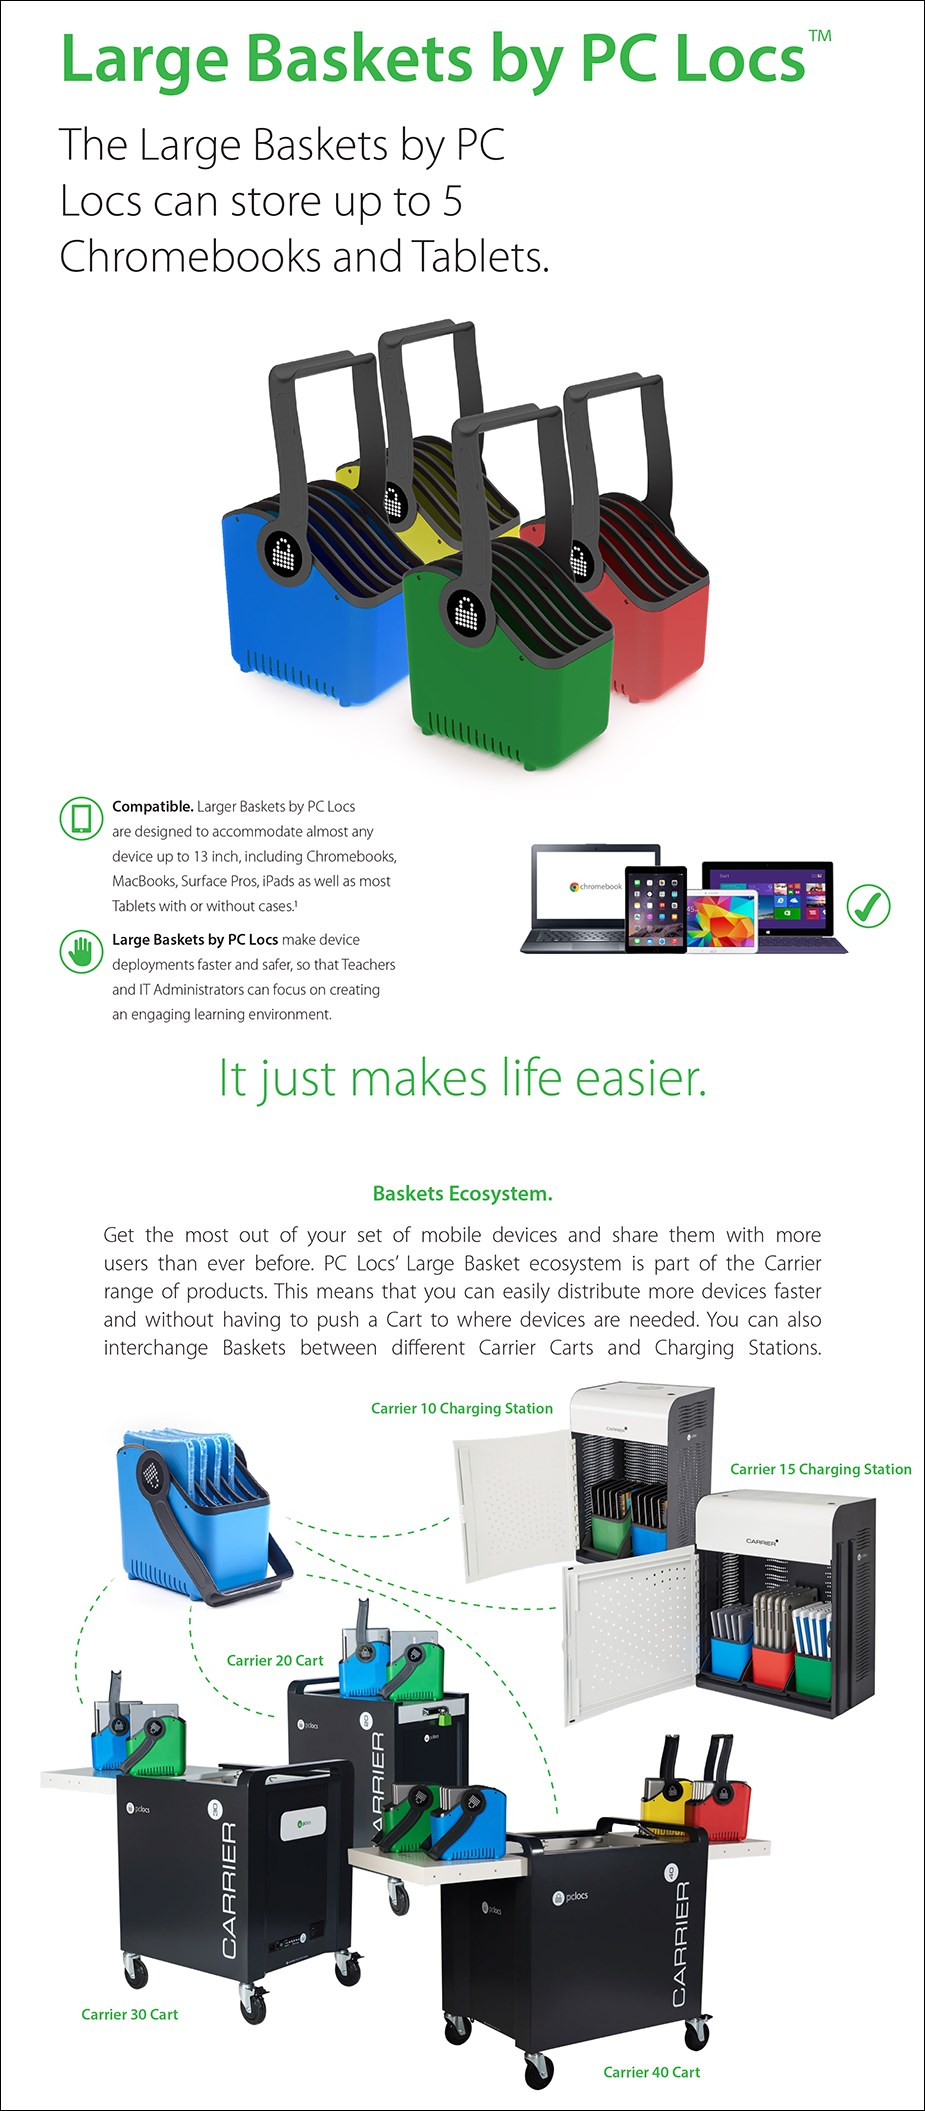 PC Locs Large Baskets by PC Locs - Overview 2